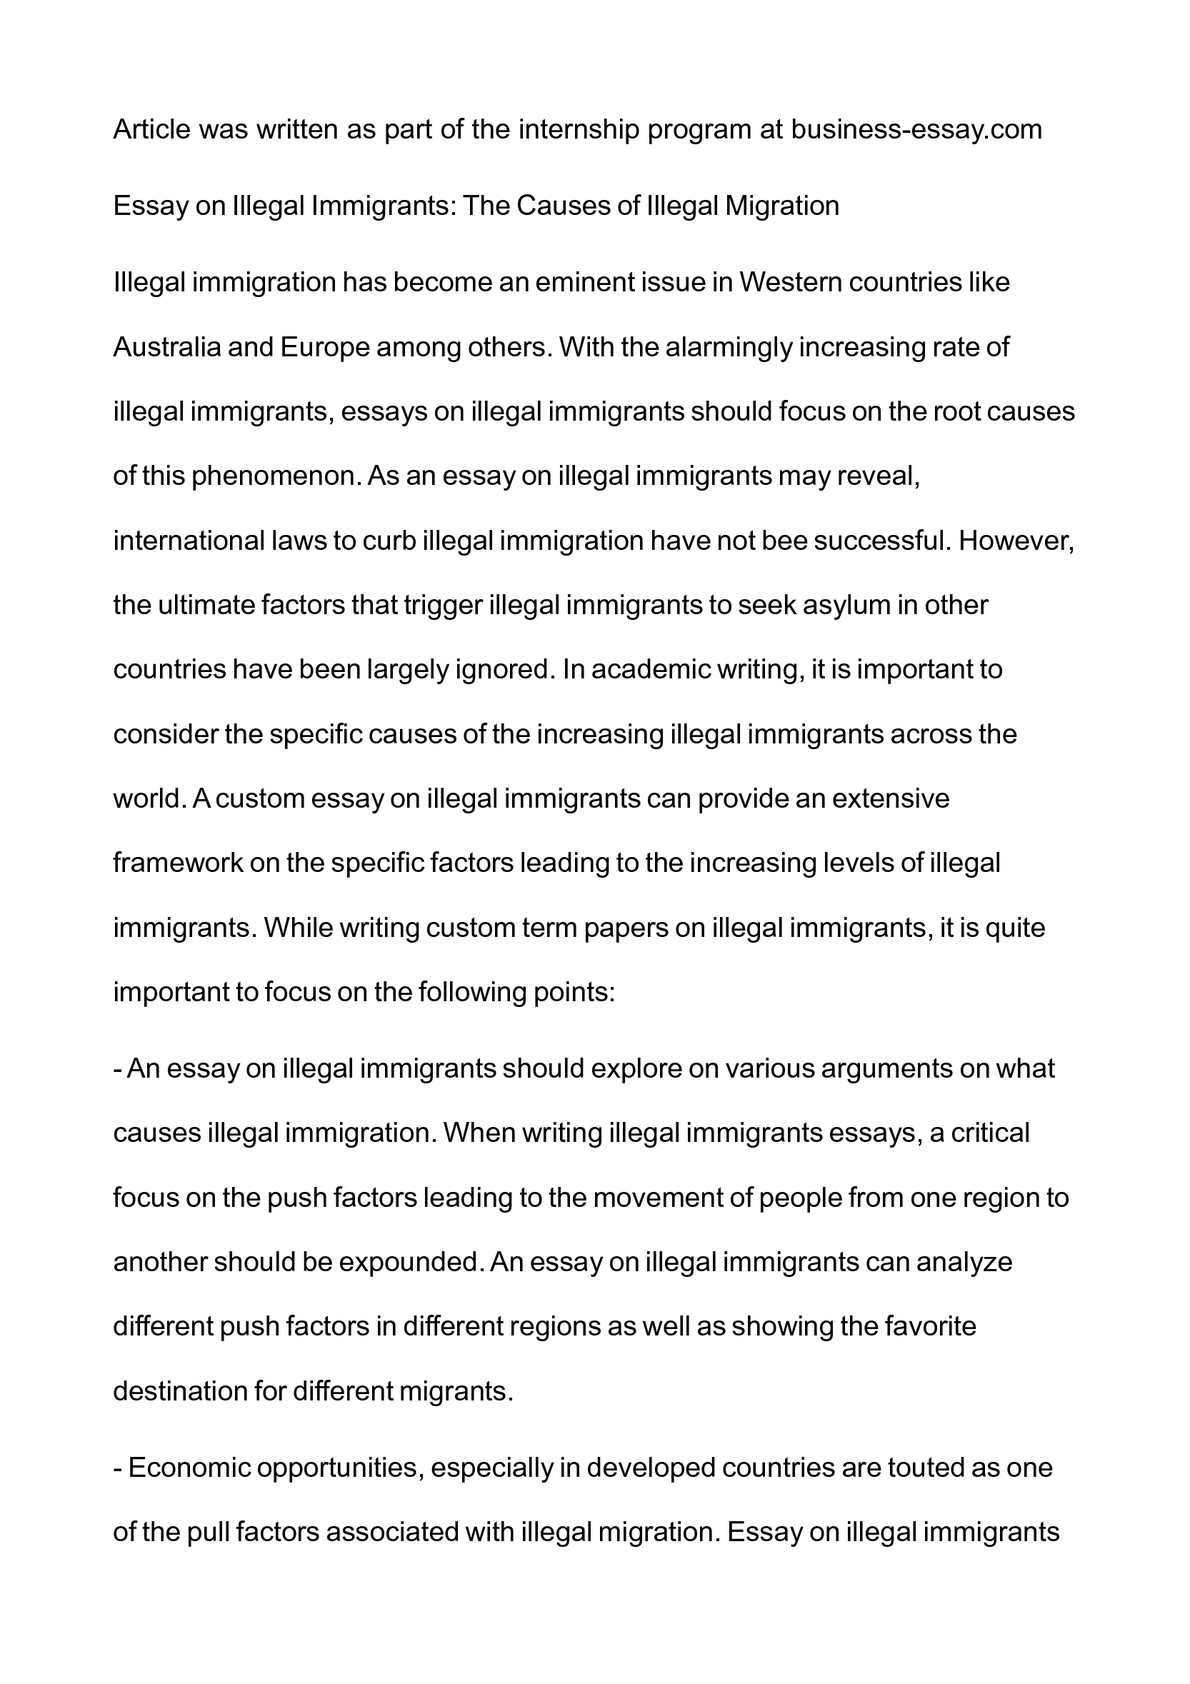 essay on immigrants immigrant changes uscis college papers on  illegal immigration essays calamatildecopyo essay on illegal immigrants the causes of illegal migration